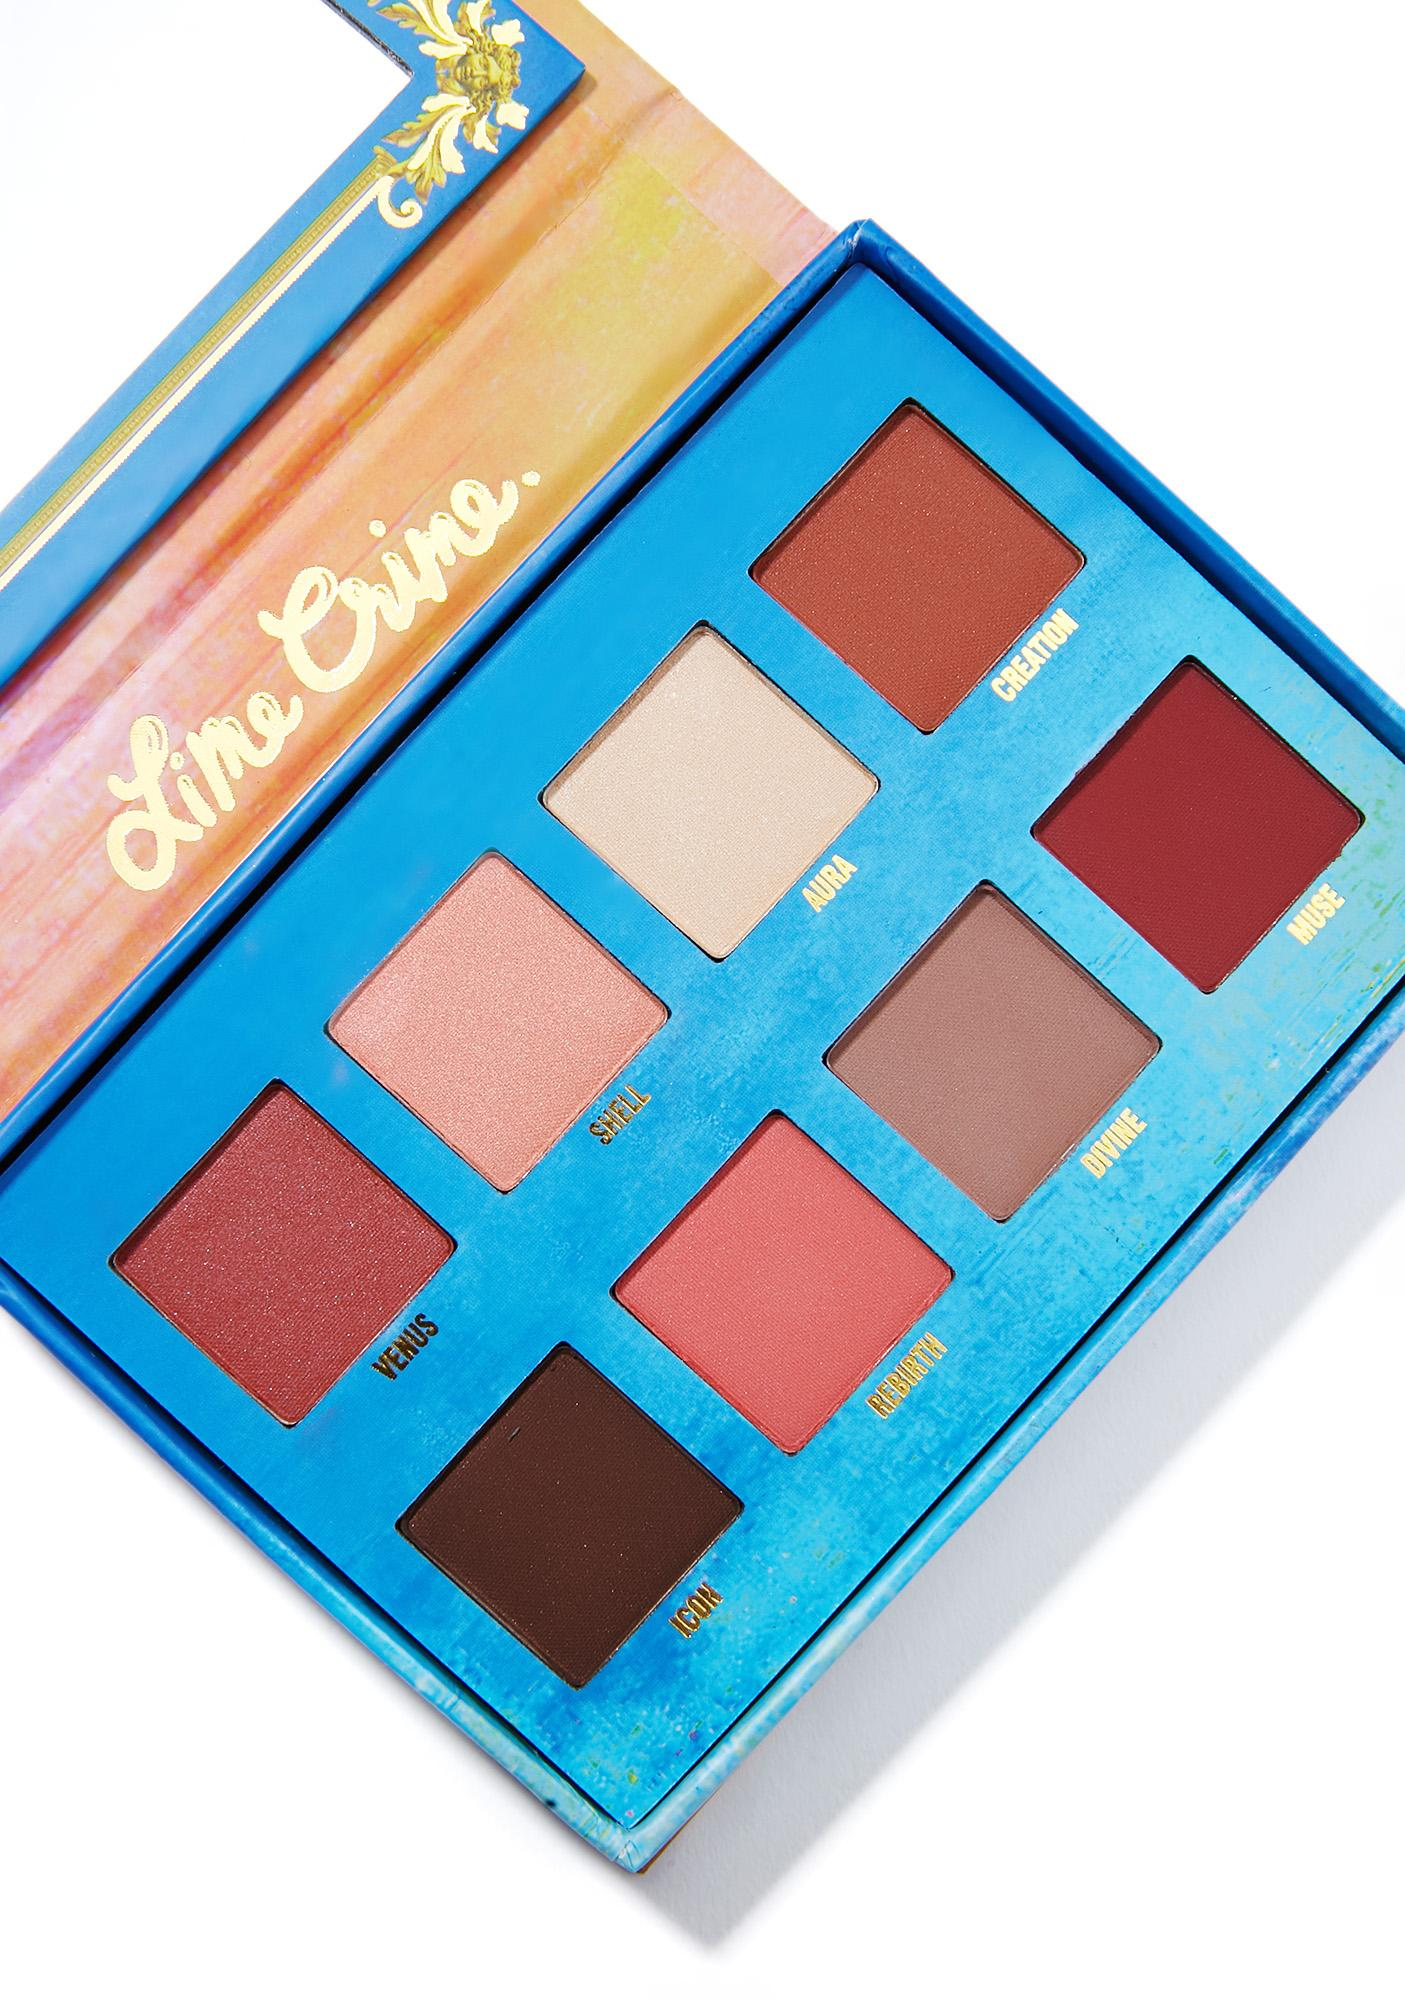 Eyeshadow Palette: Lime Crime Venus Eyeshadow Palette